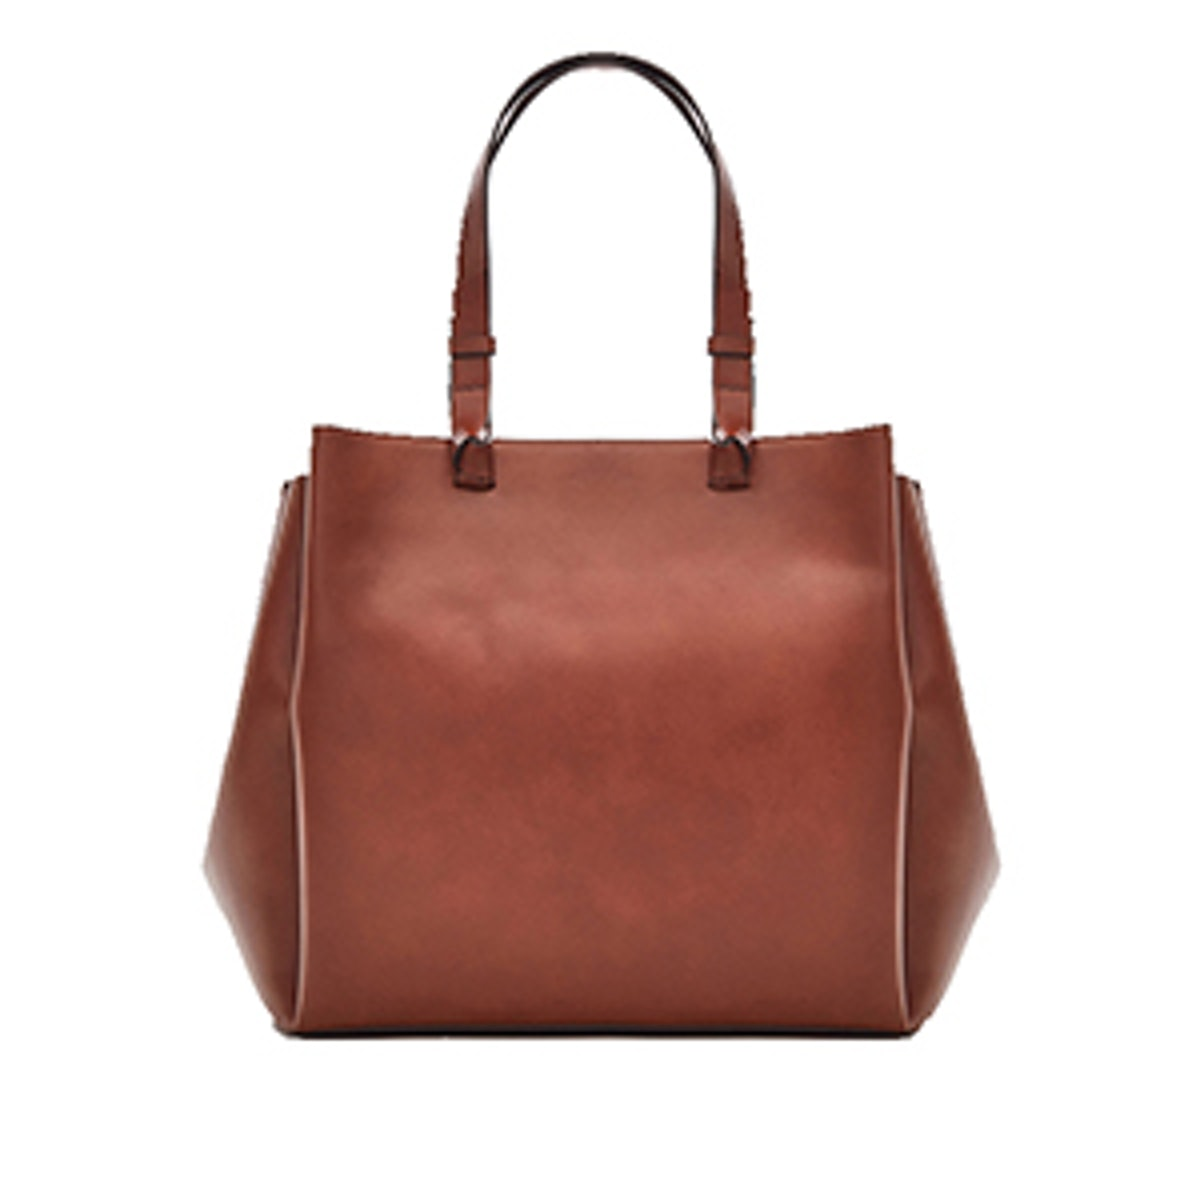 Leather Tote Bag With Knotted Details